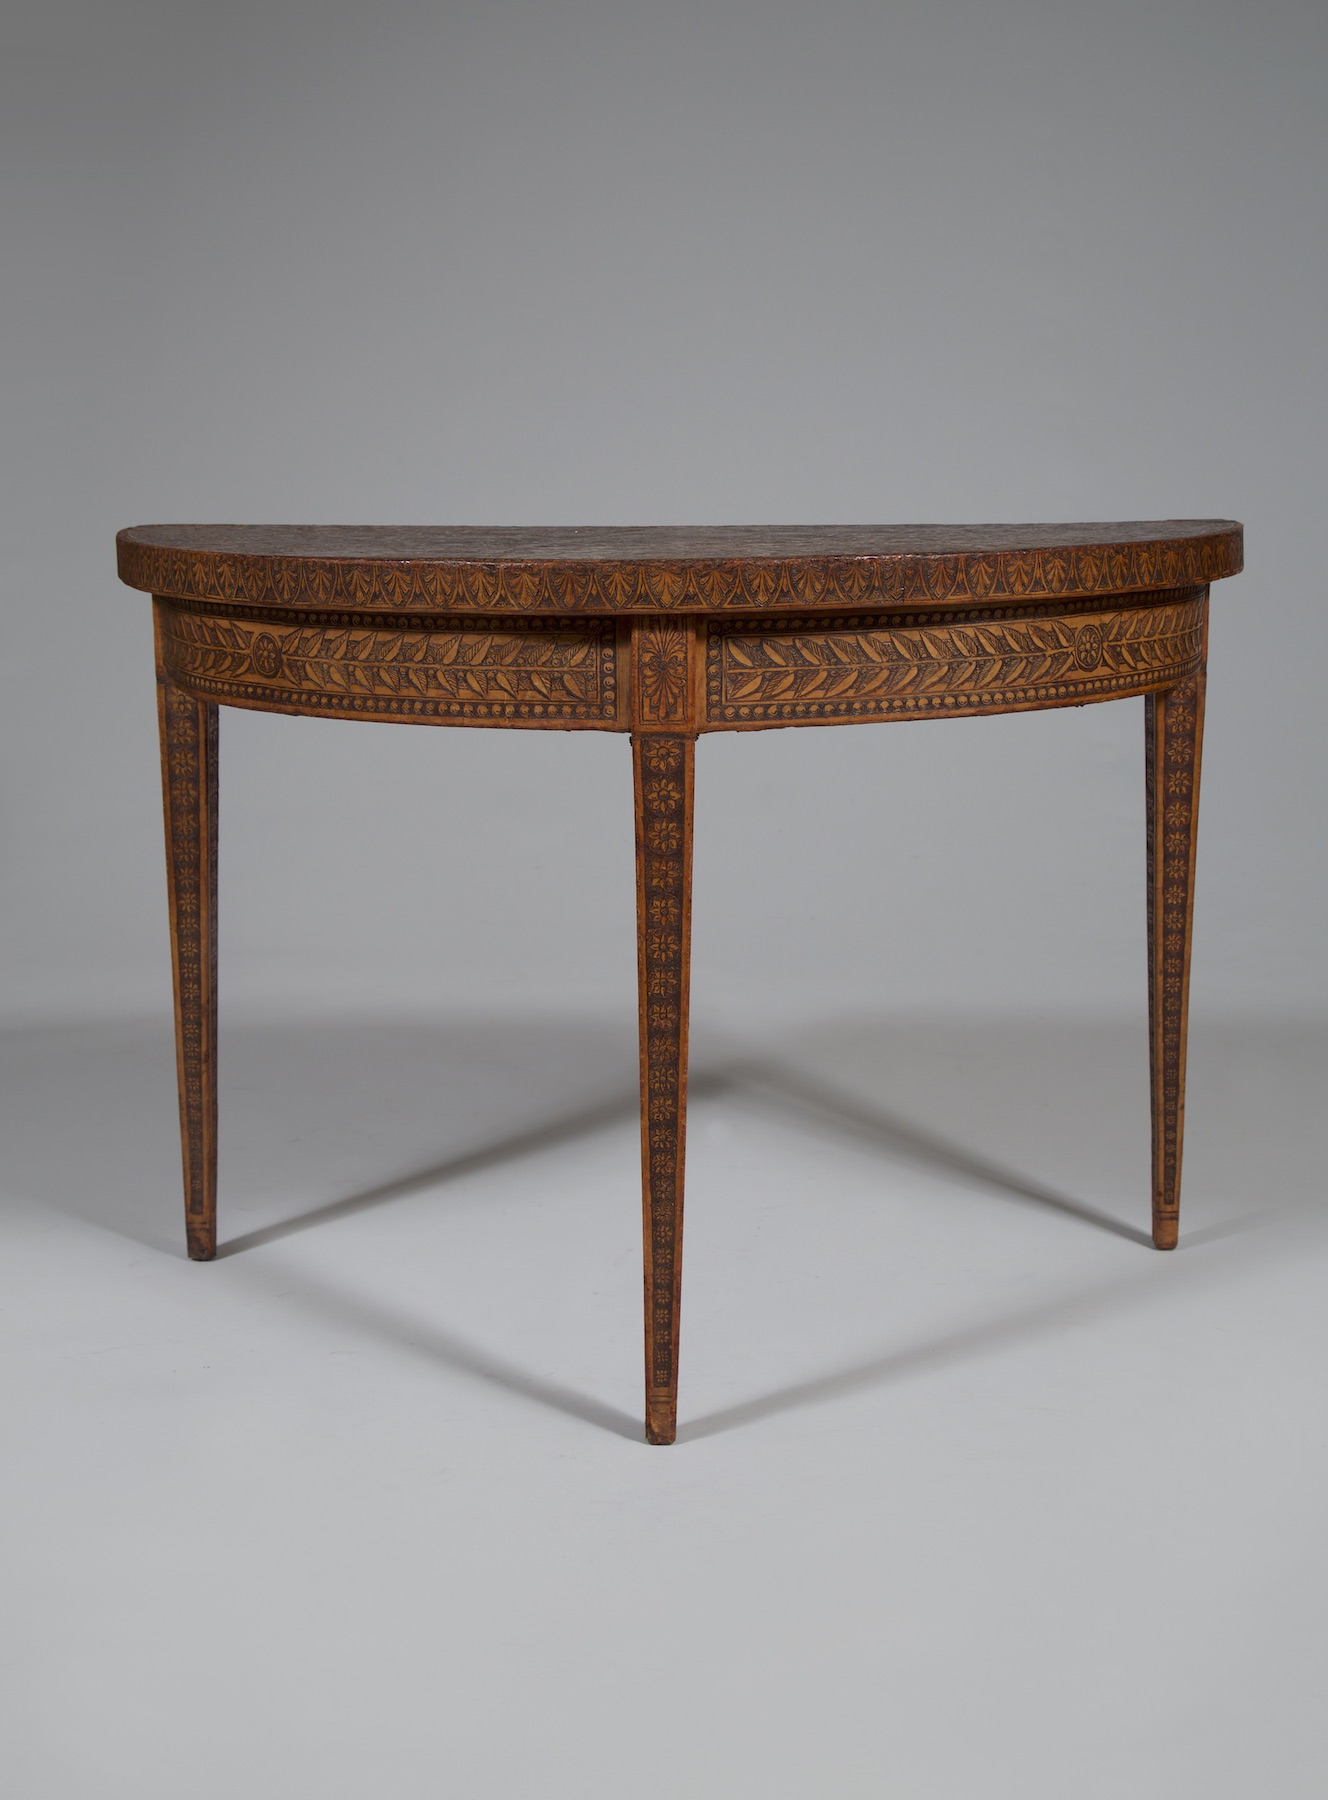 11339 U2013 A MOST UNUSUAL DEMILUNE CONSOLE TABLE ALL COVERED IN FINELY WORKED  LEATHER | Carlton Hobbs New York